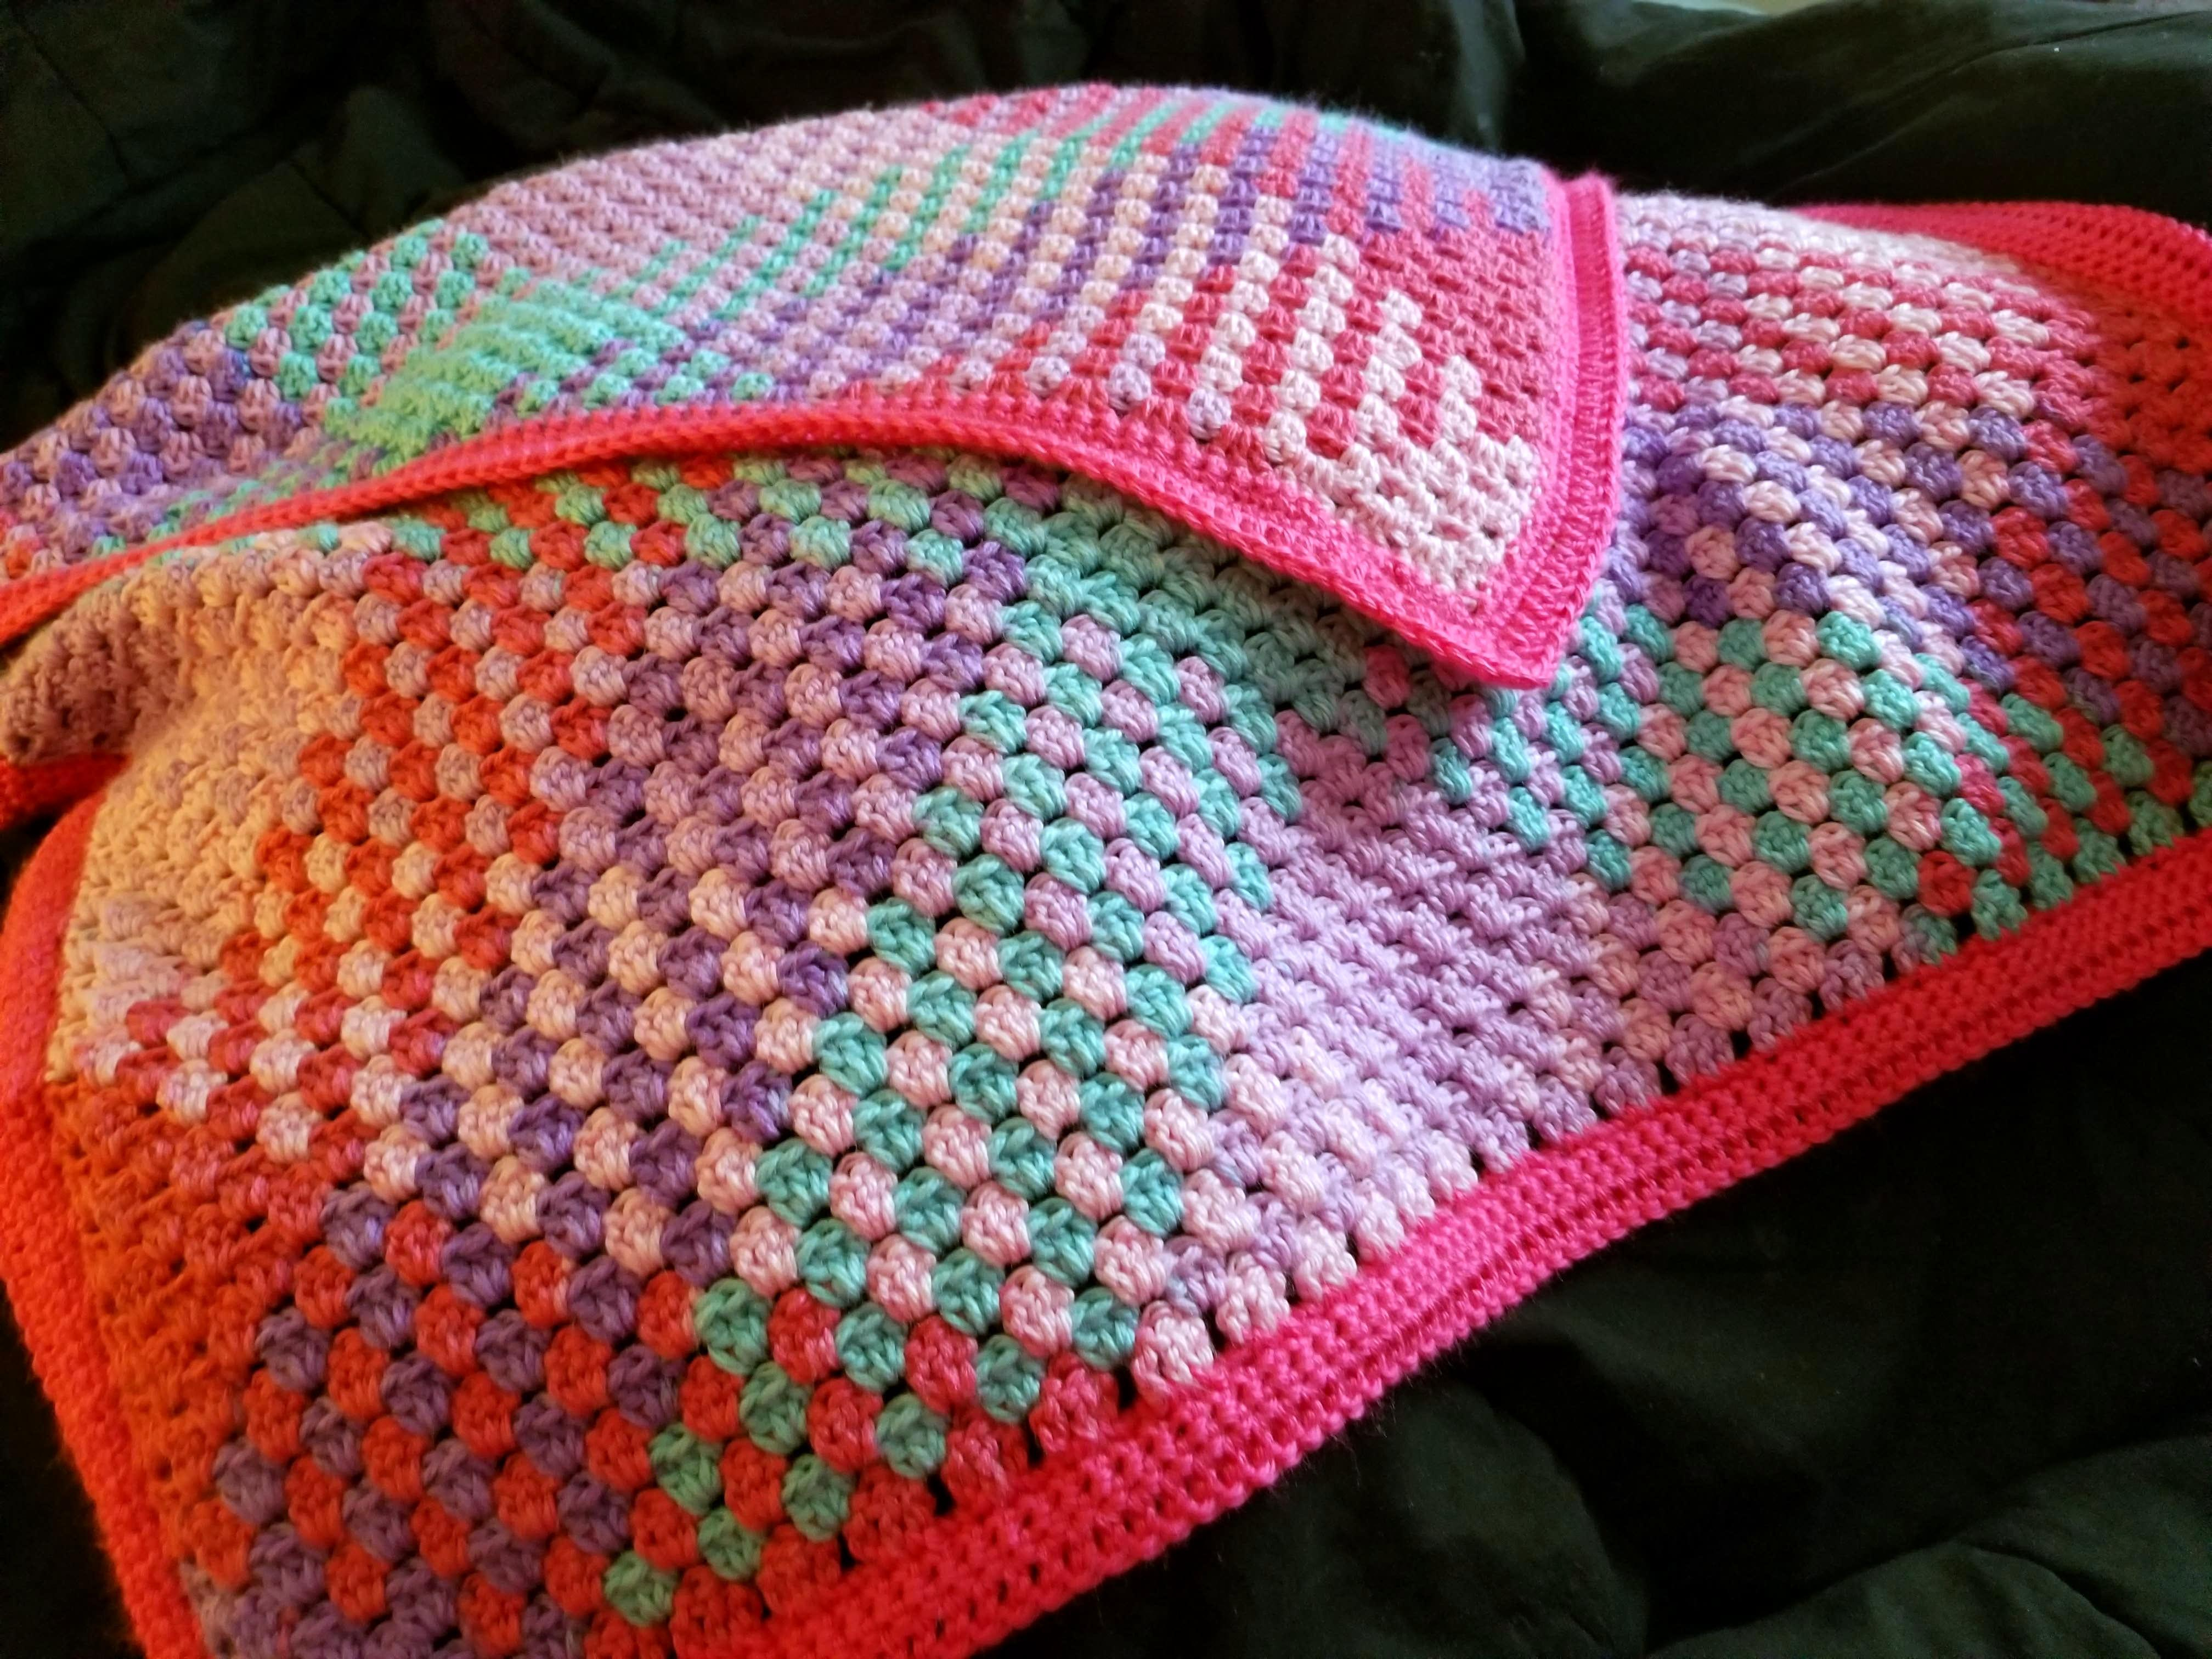 Crochet Pooling Free Pattern Ive Tried Color Pooling Many Times Without Success This Is The